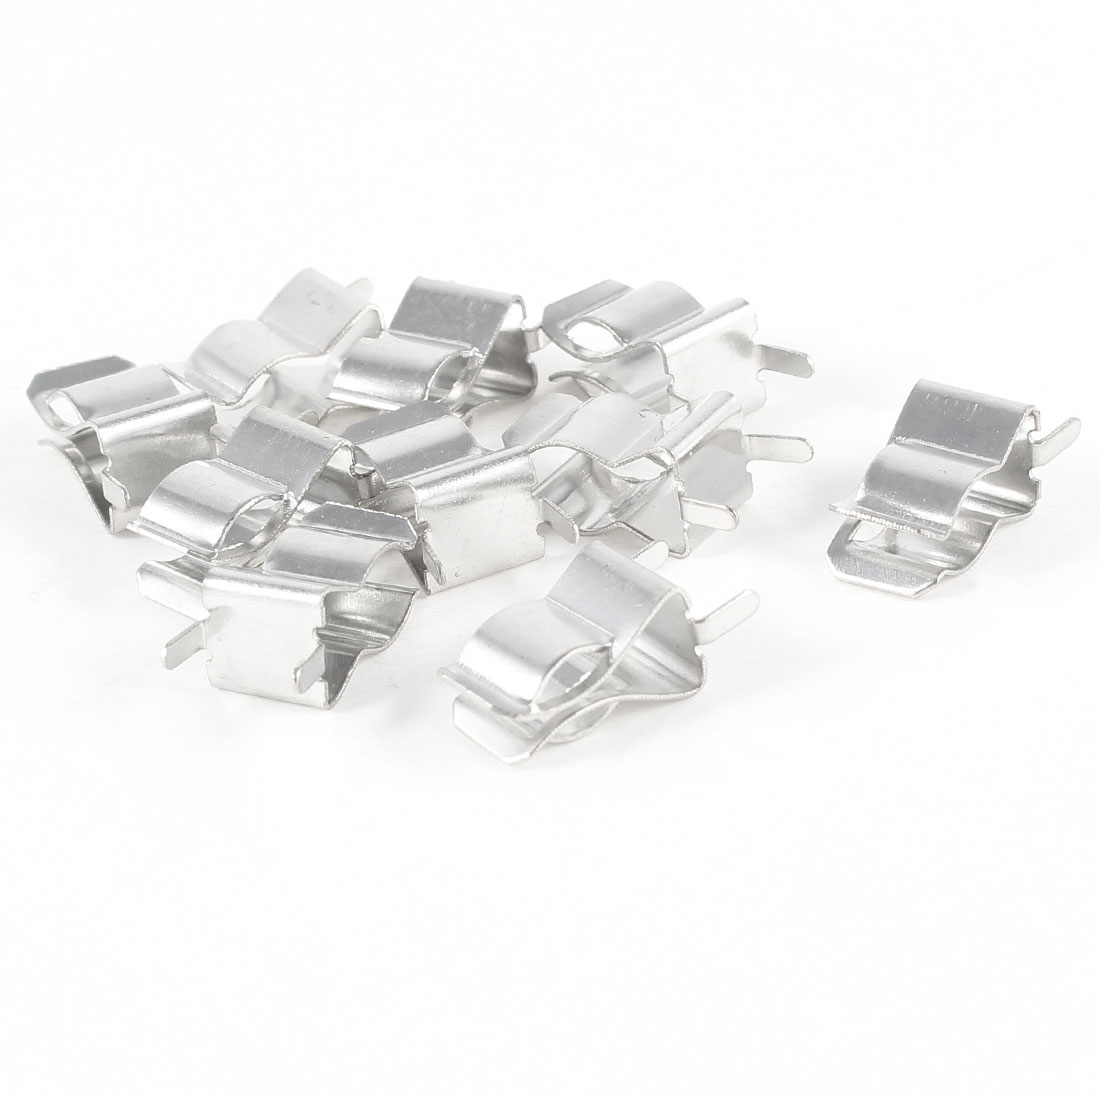 10pcs 6mm x 30mm Glass Tube Quick Fast Blow Fuse Clips Holder